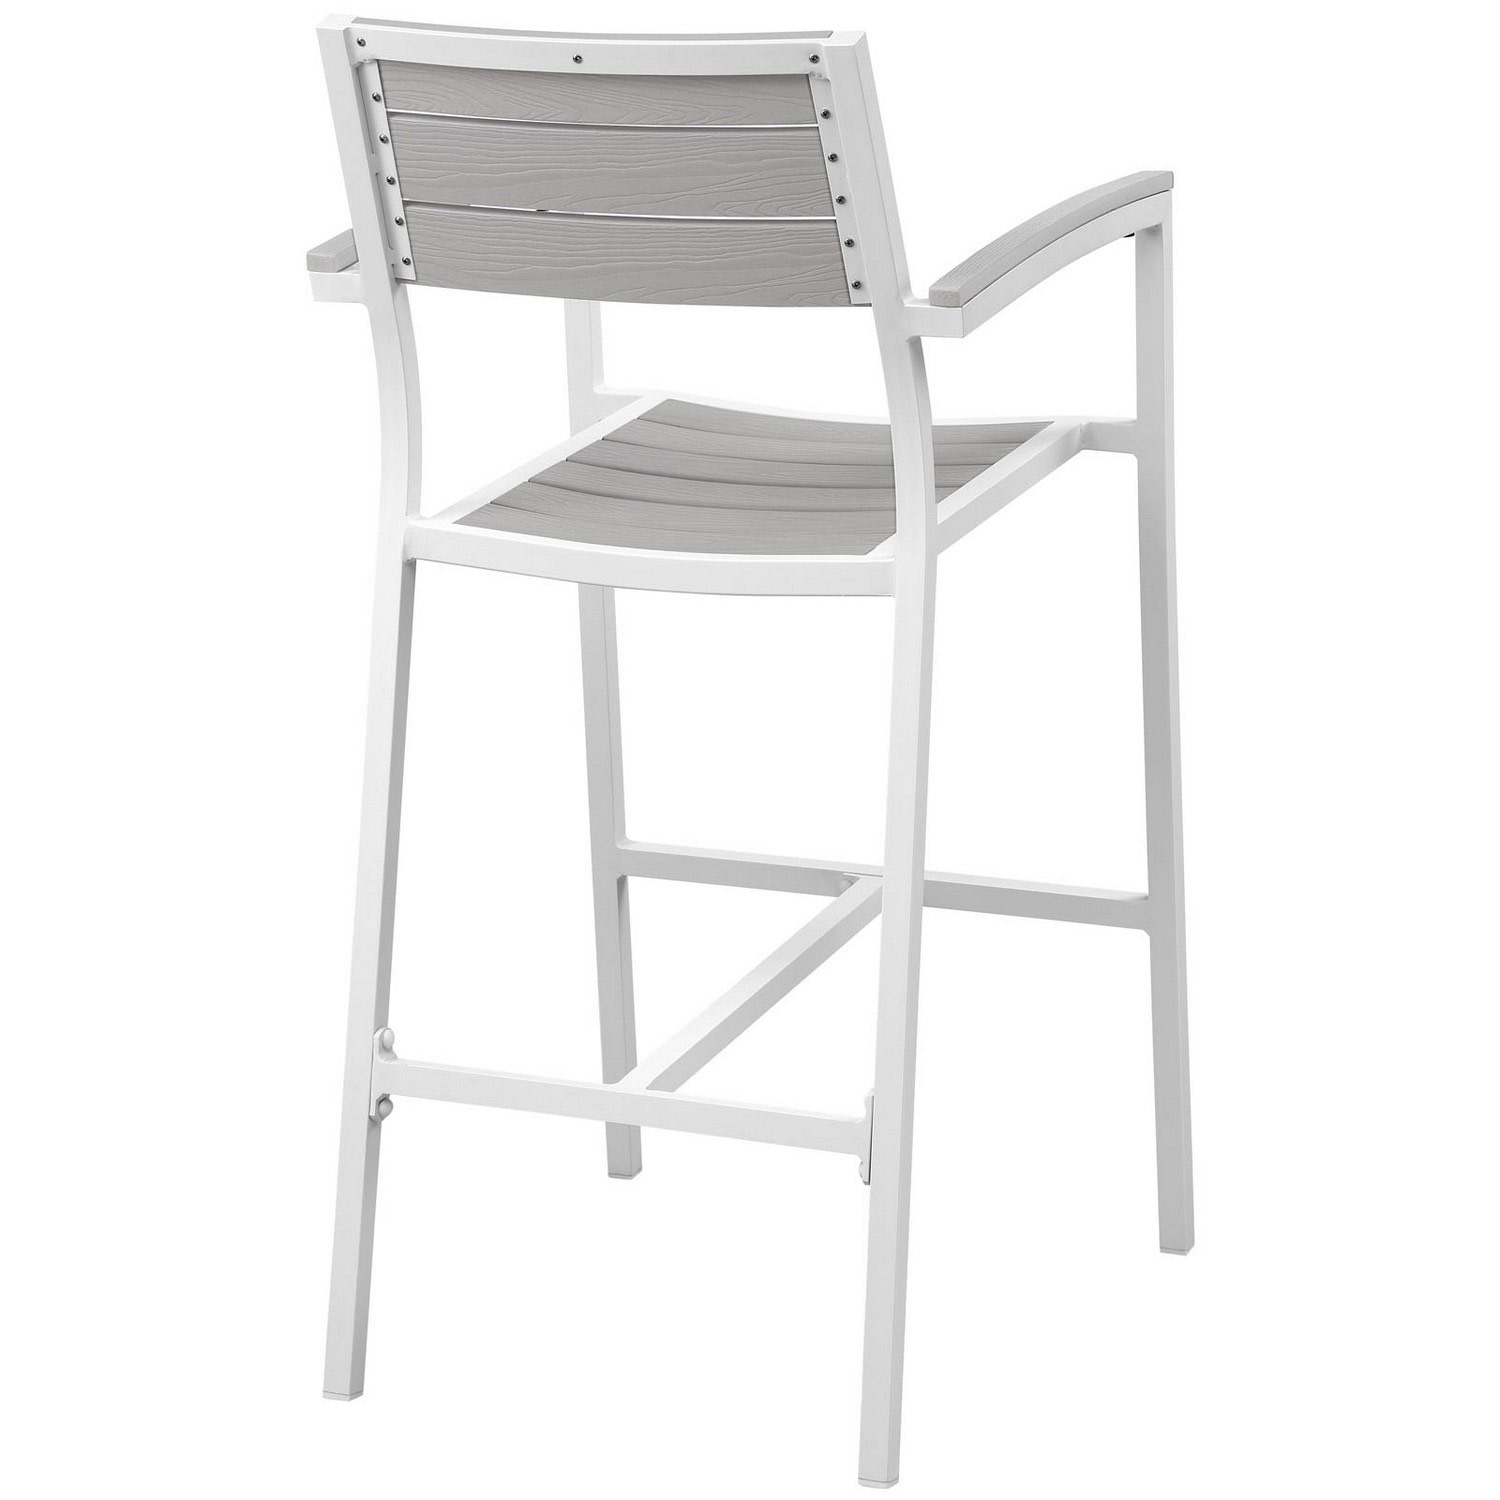 Modway Maine Outdoor Patio Bar Stool - White/Light Gray